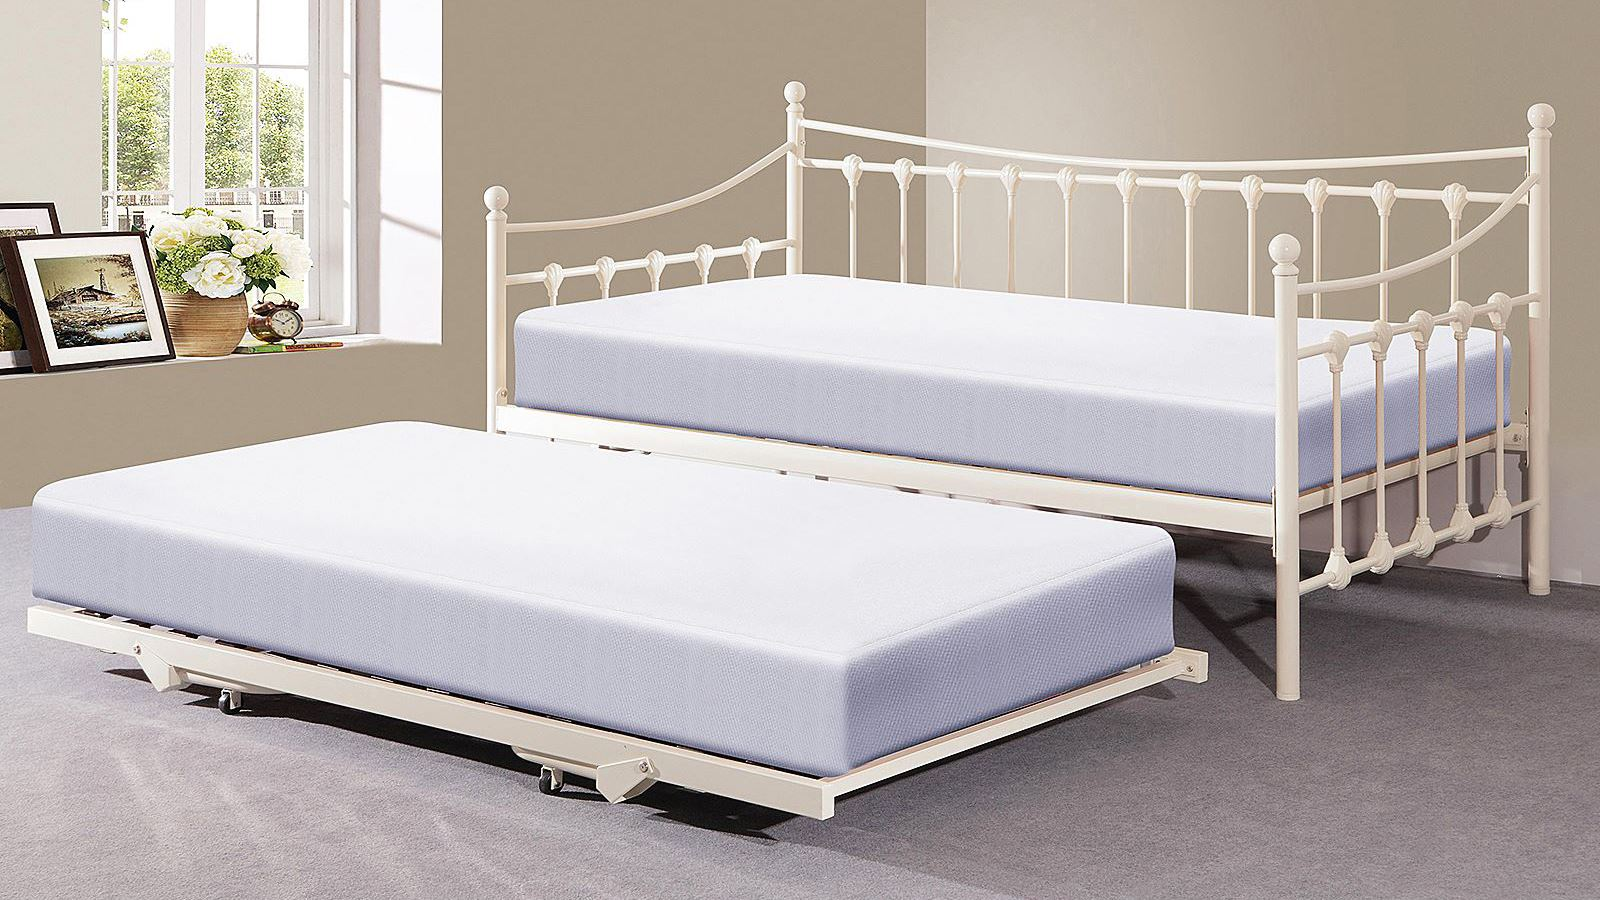 French Bed Frames Nz